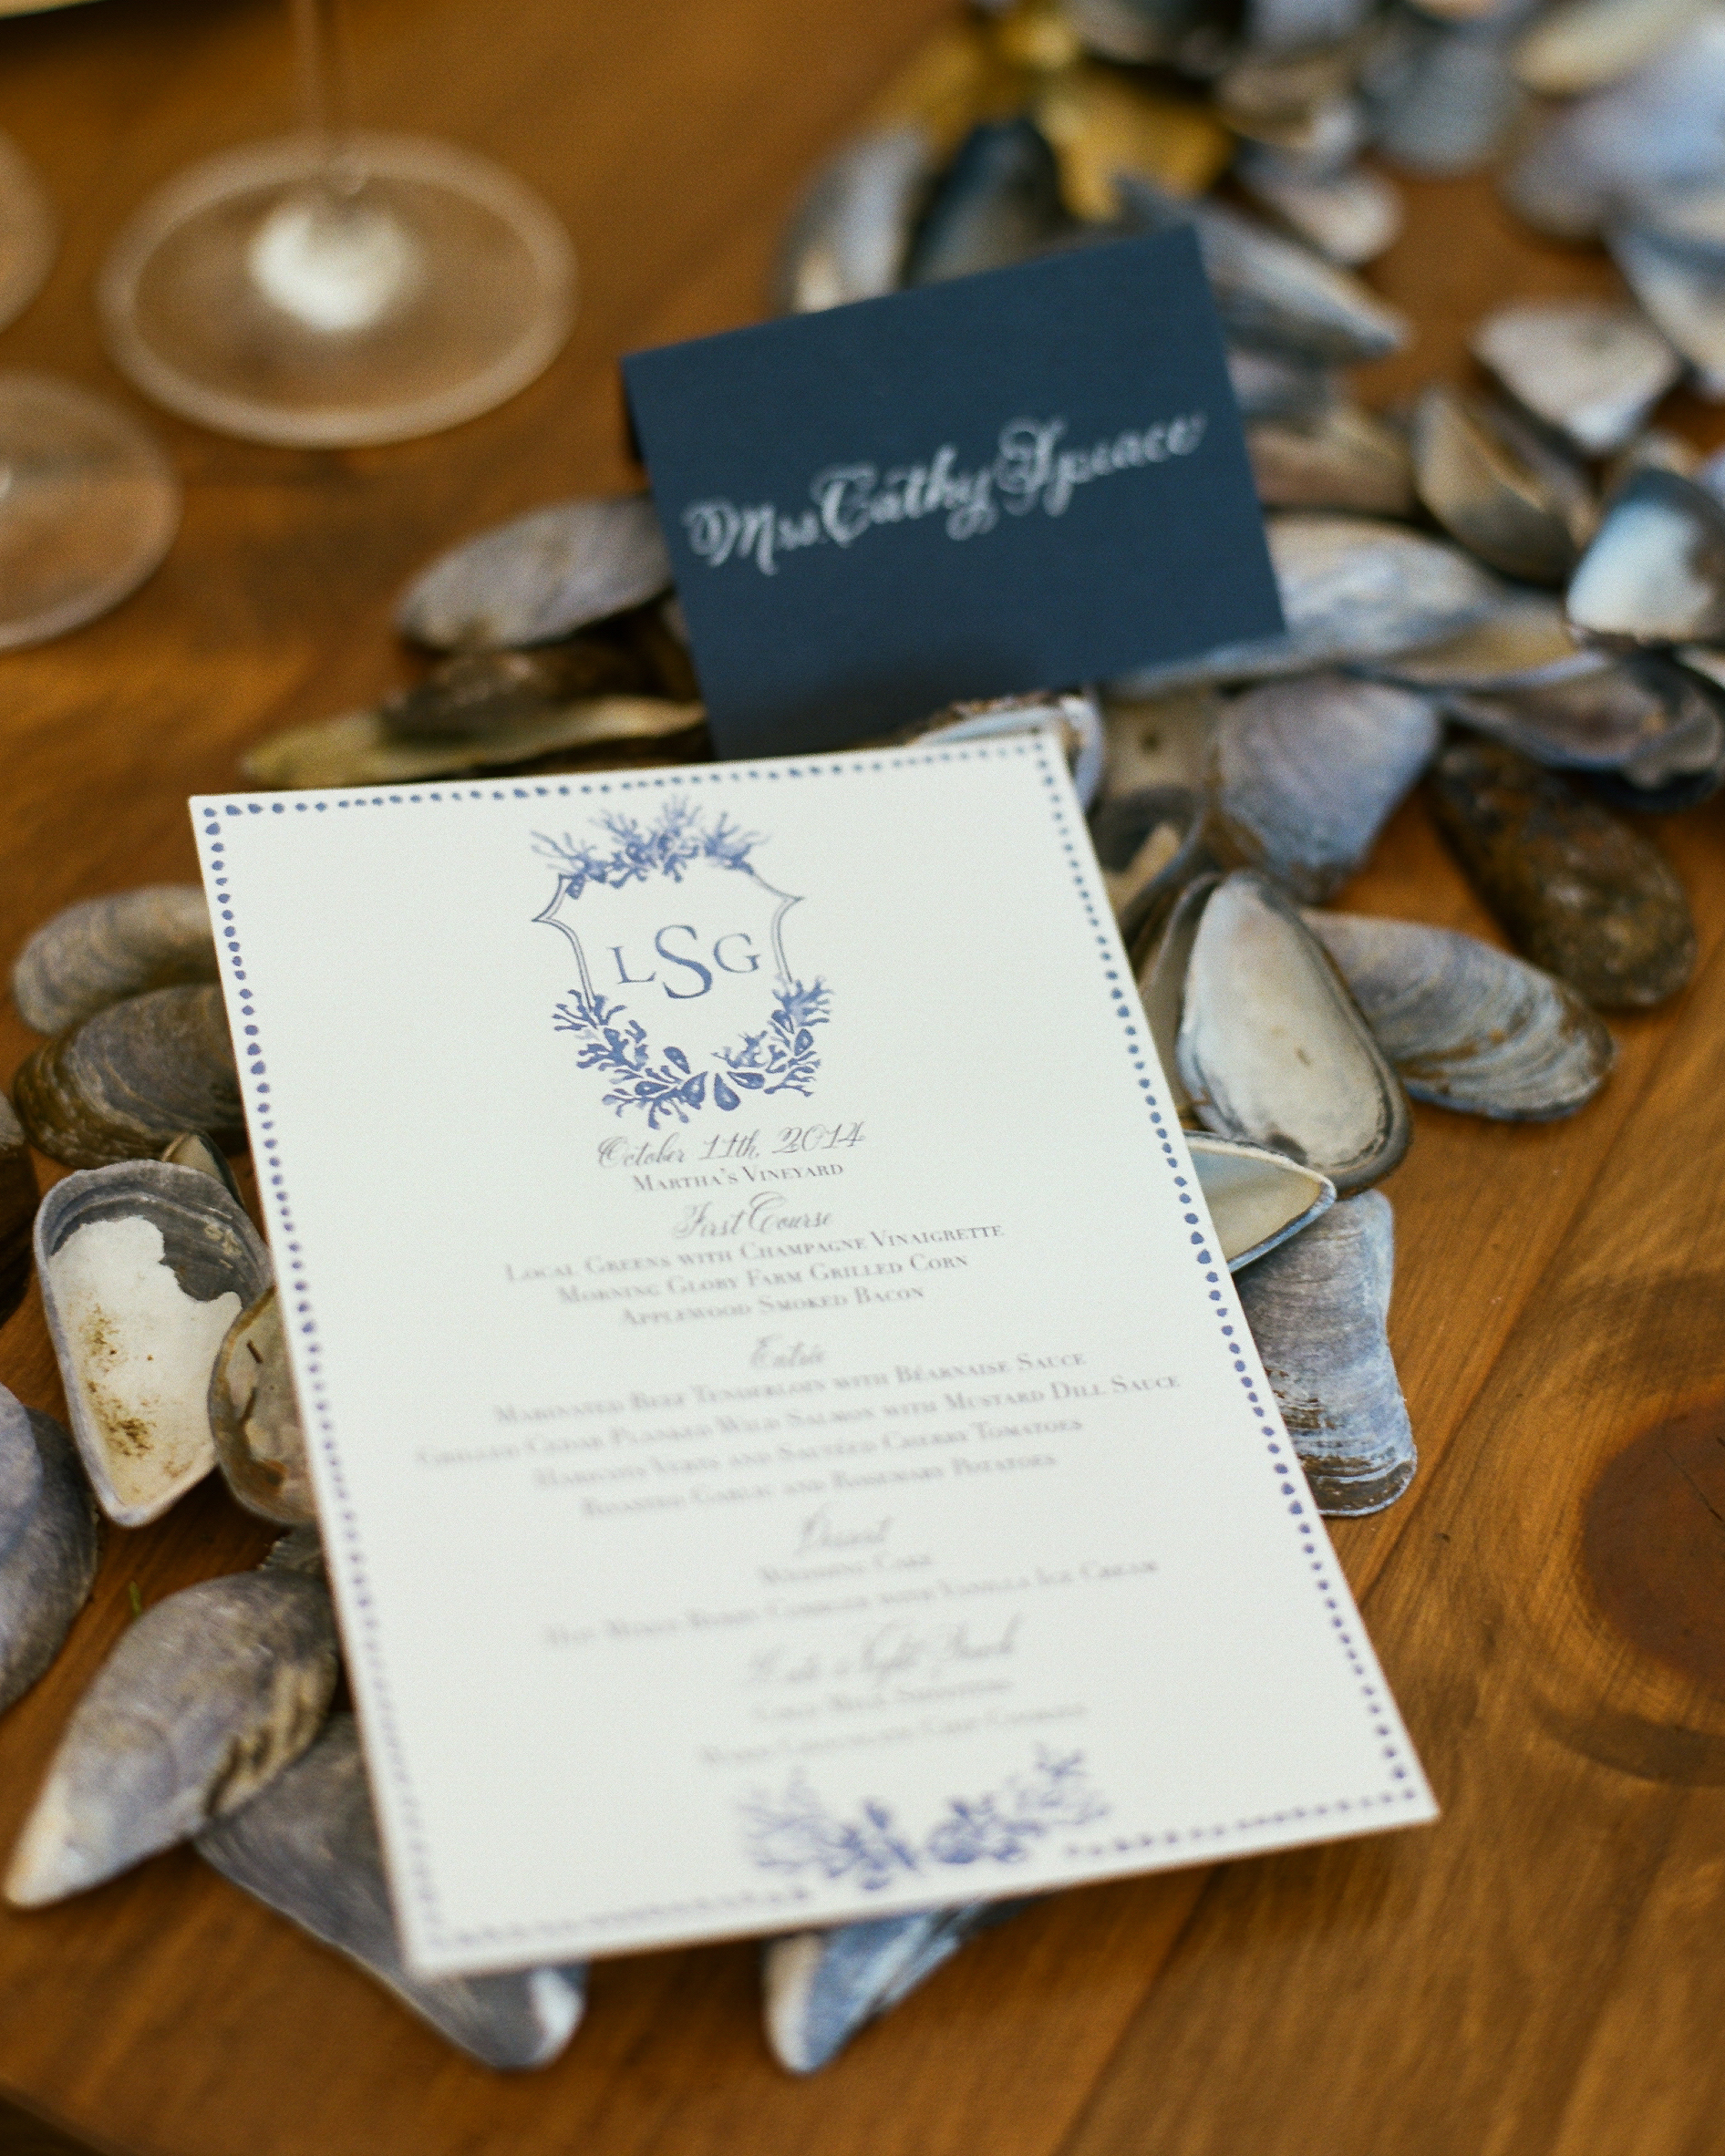 lindsay-garrett-wedding-menu-0750-s111850-0415.jpg